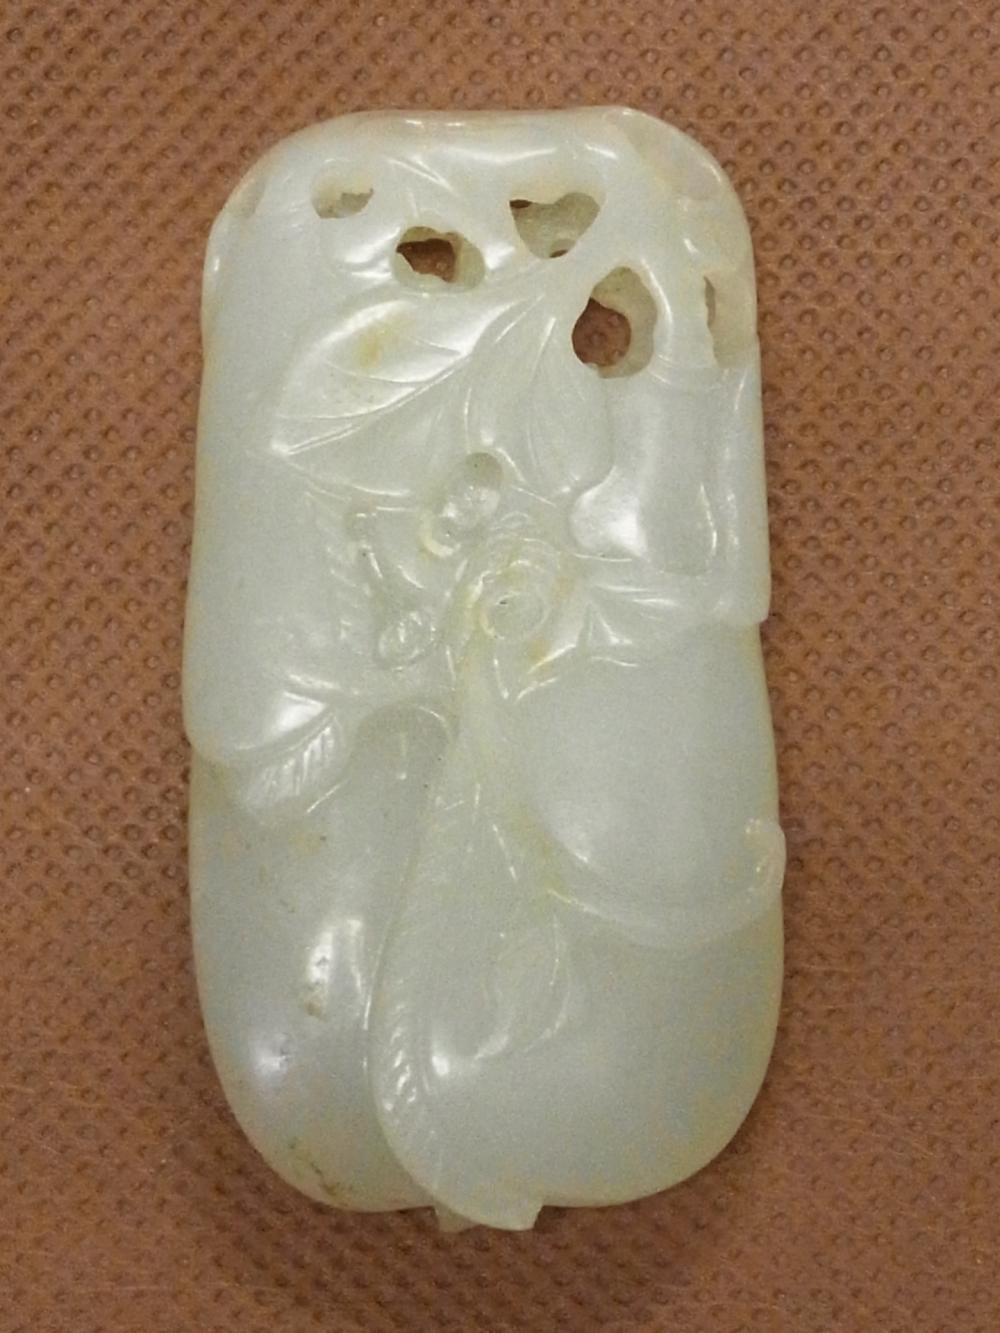 Antique Muttonfat Jadeite 181ct Carved Pale Chinese Jade Eggplant Fruit Amulet or Pendant